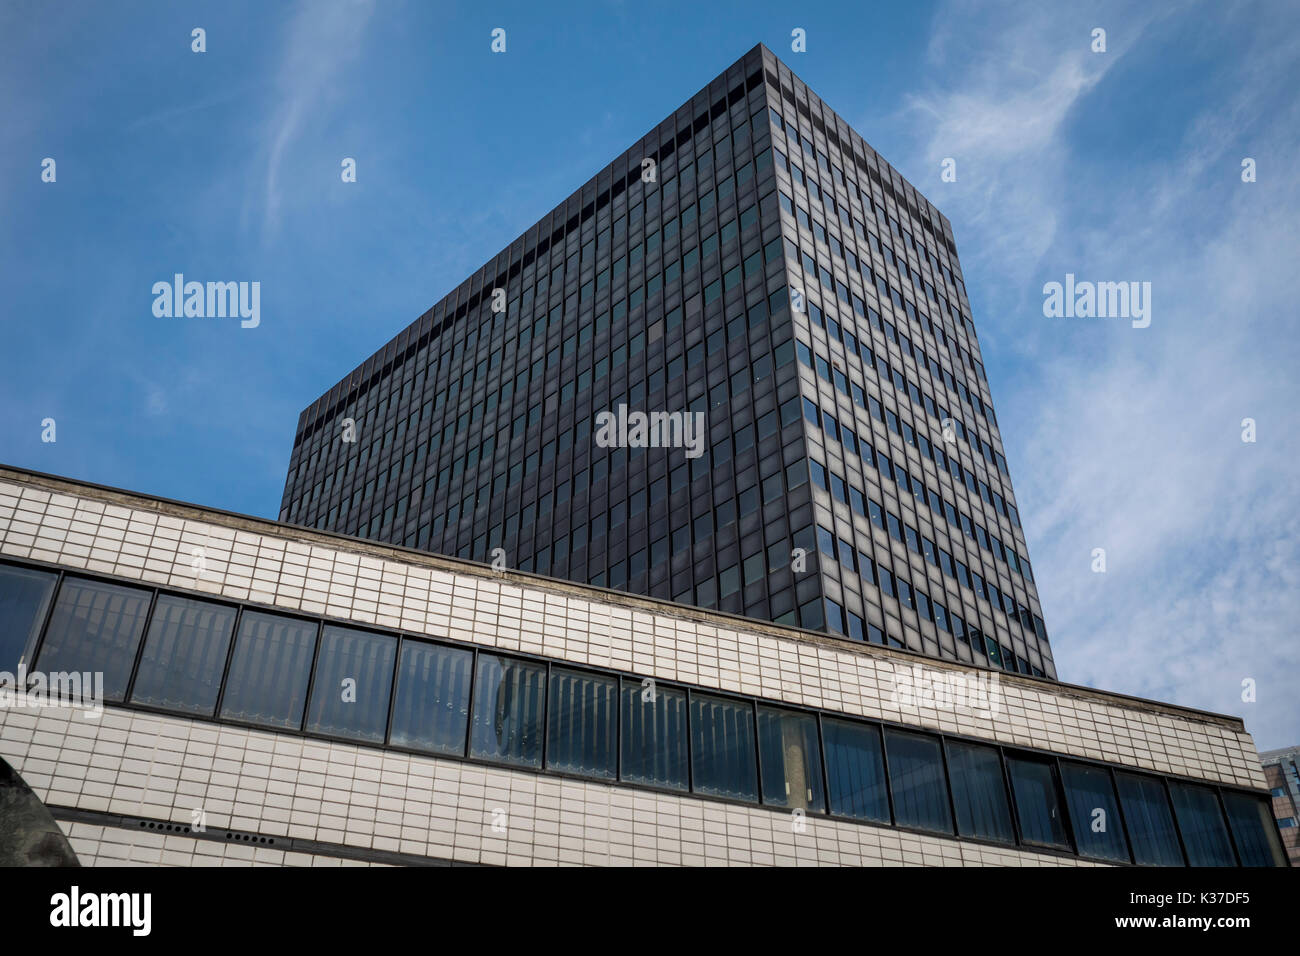 140 London Wall. International style high rise tower office block in the City of London, UK - Stock Image